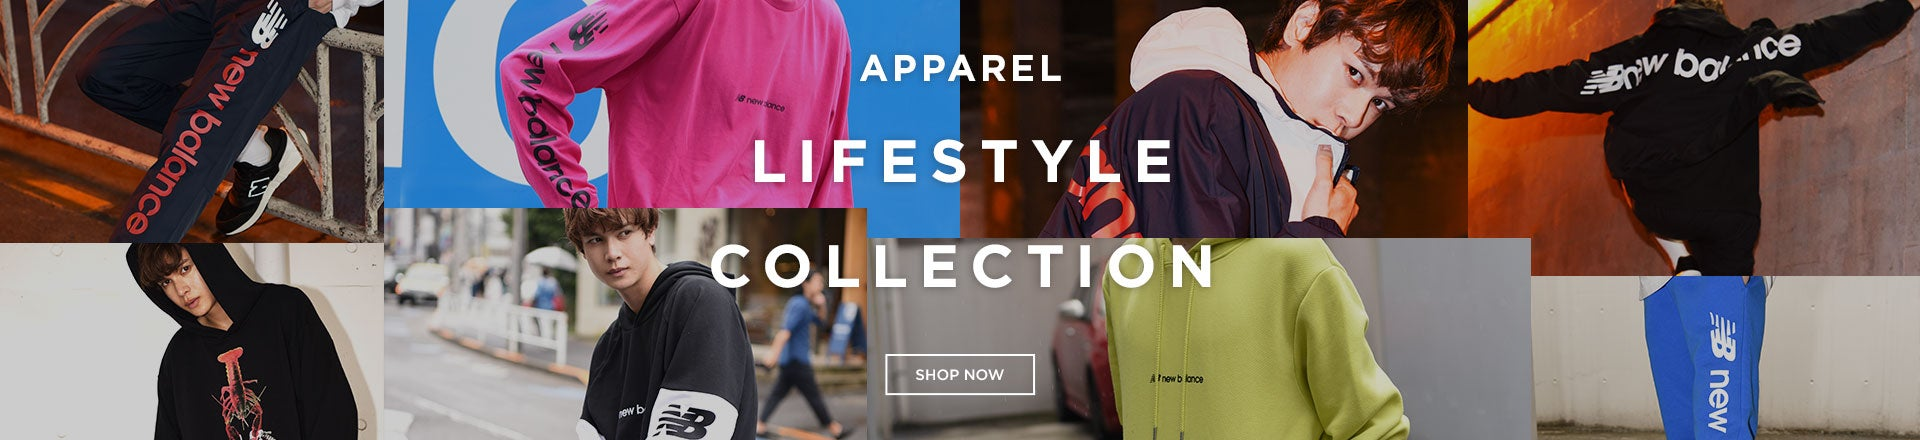 APPAREL LIFESTYLE COLLECTION